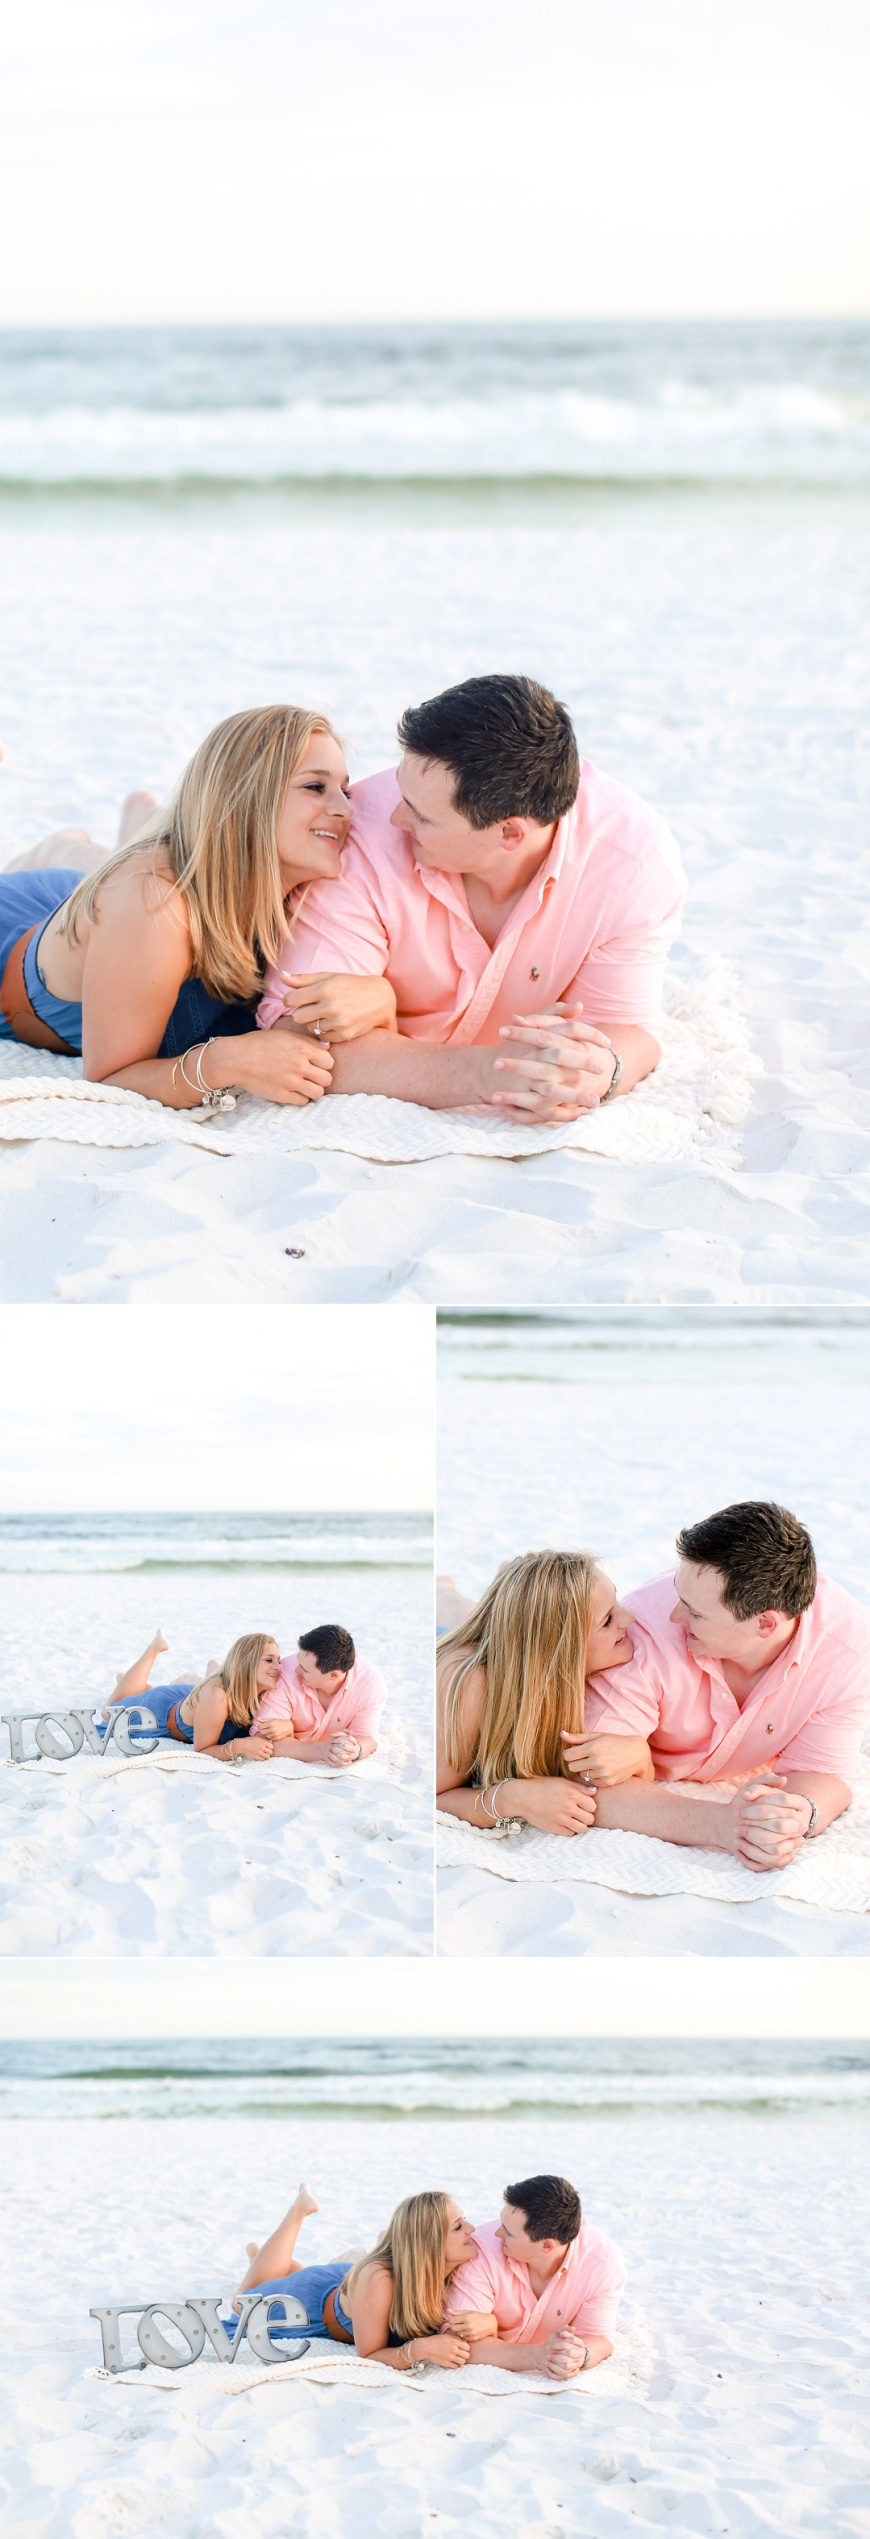 Sandestin-Engagement-Renee-Lee (144).jpg